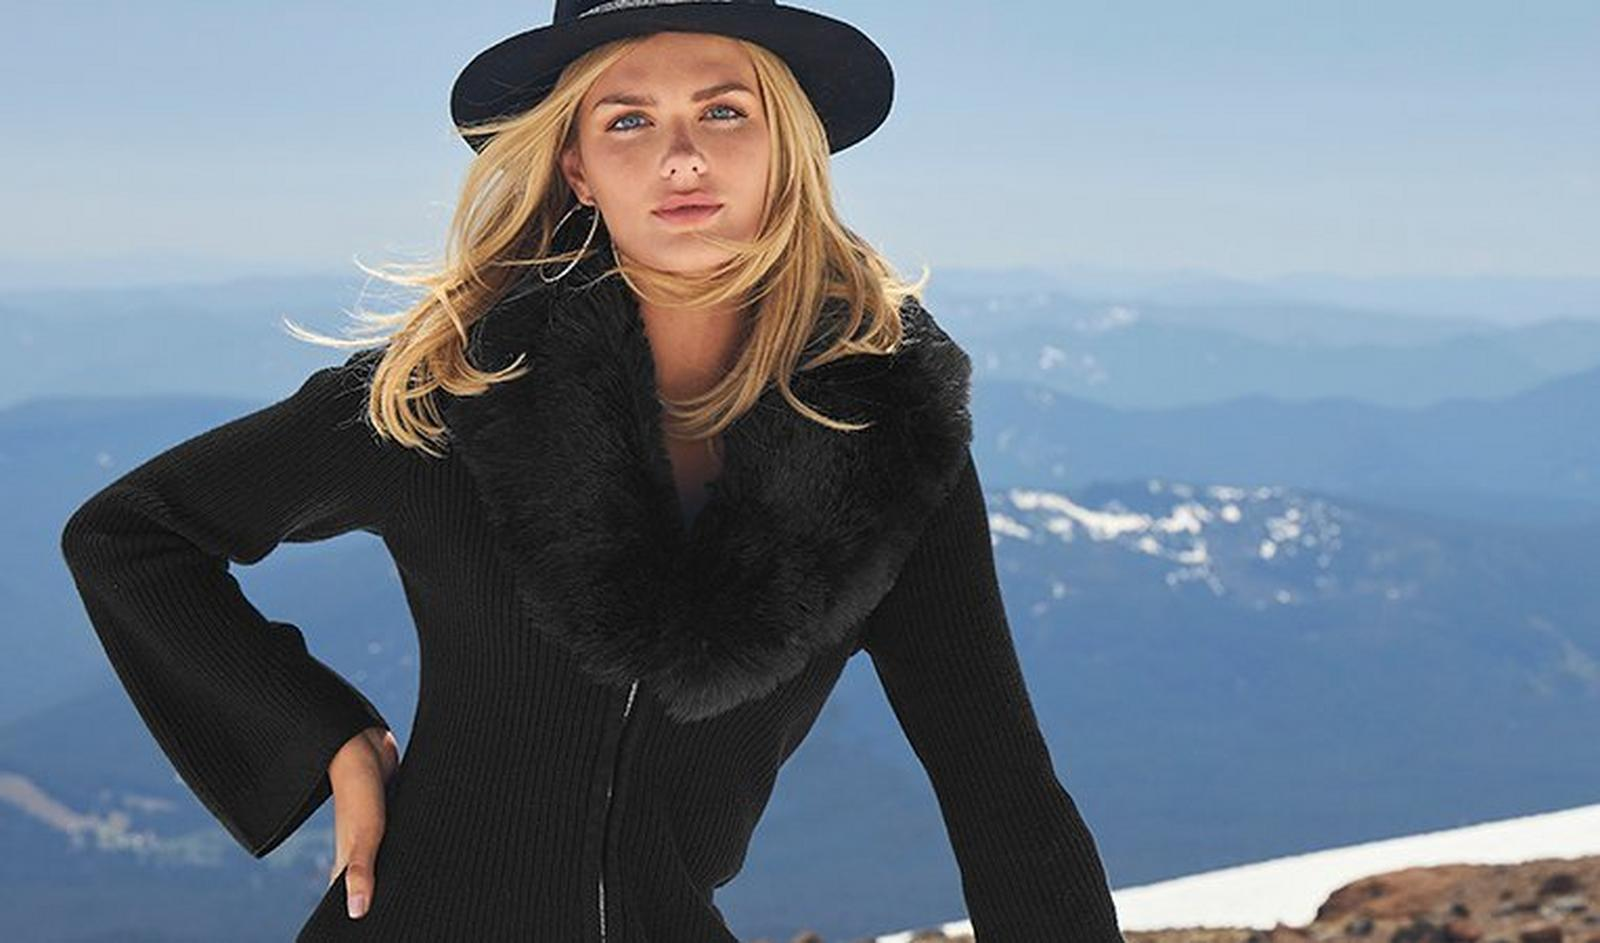 model wearing a black ribbed cardigan with a black faux-fur collar and a black hat.